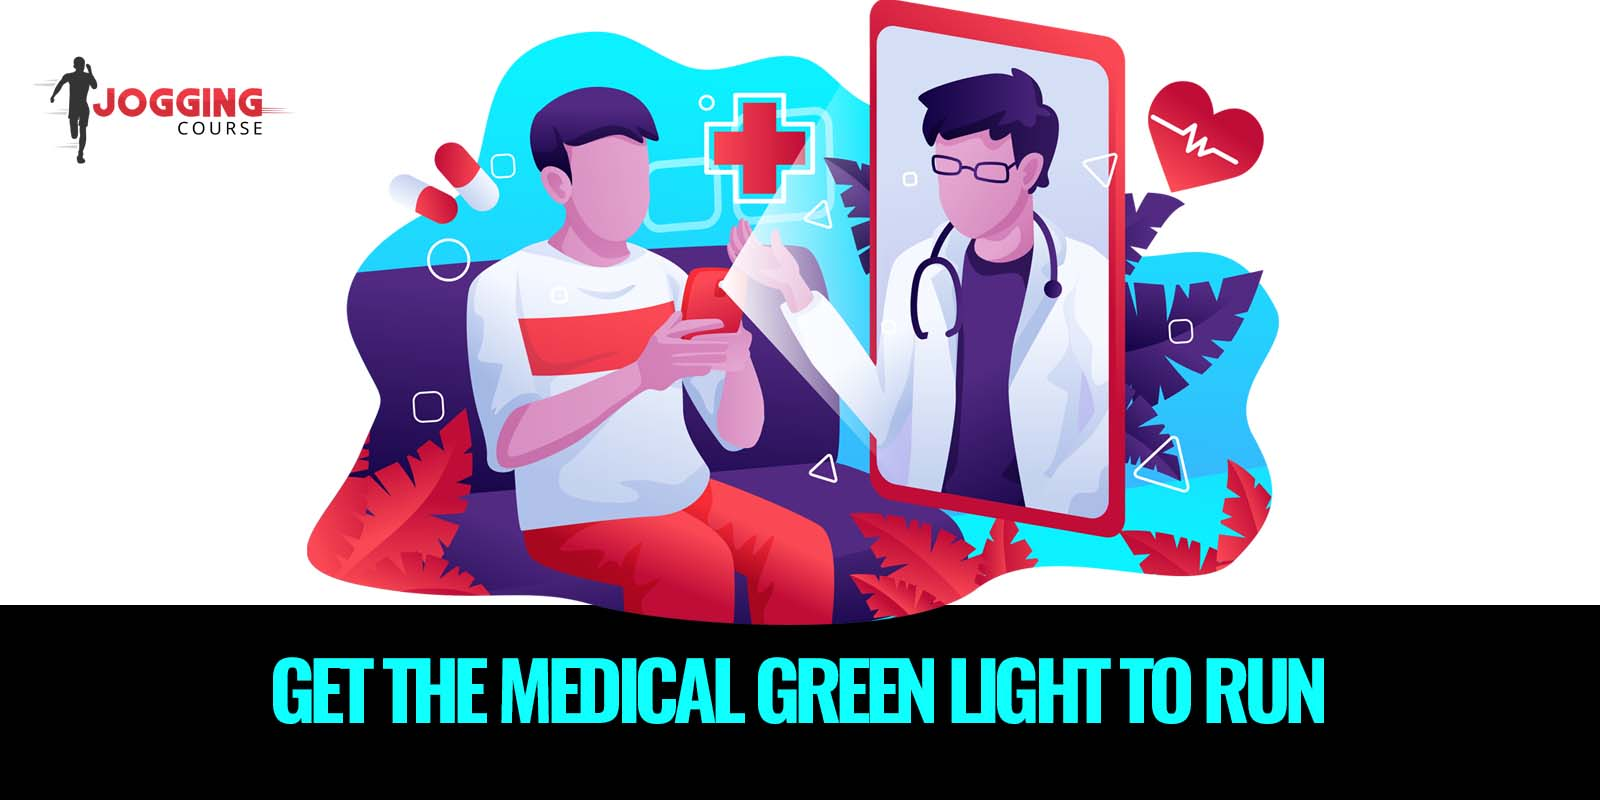 Get the medical green light to run